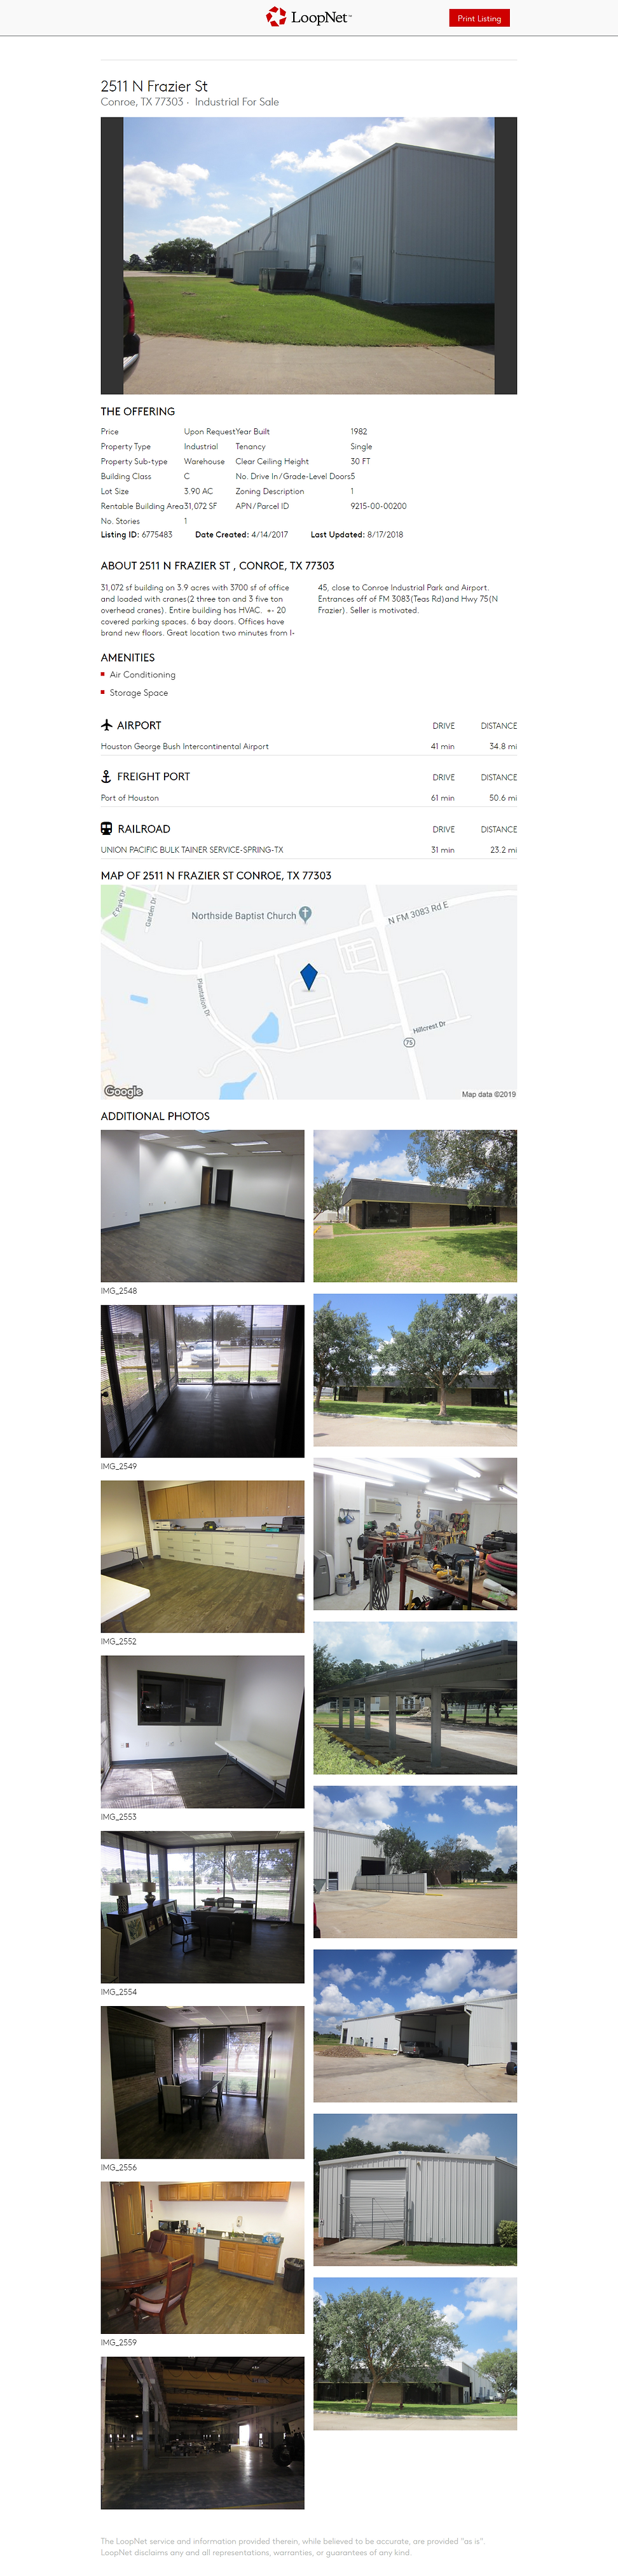 2511 N Frazier St Conroe, TX 77303.png